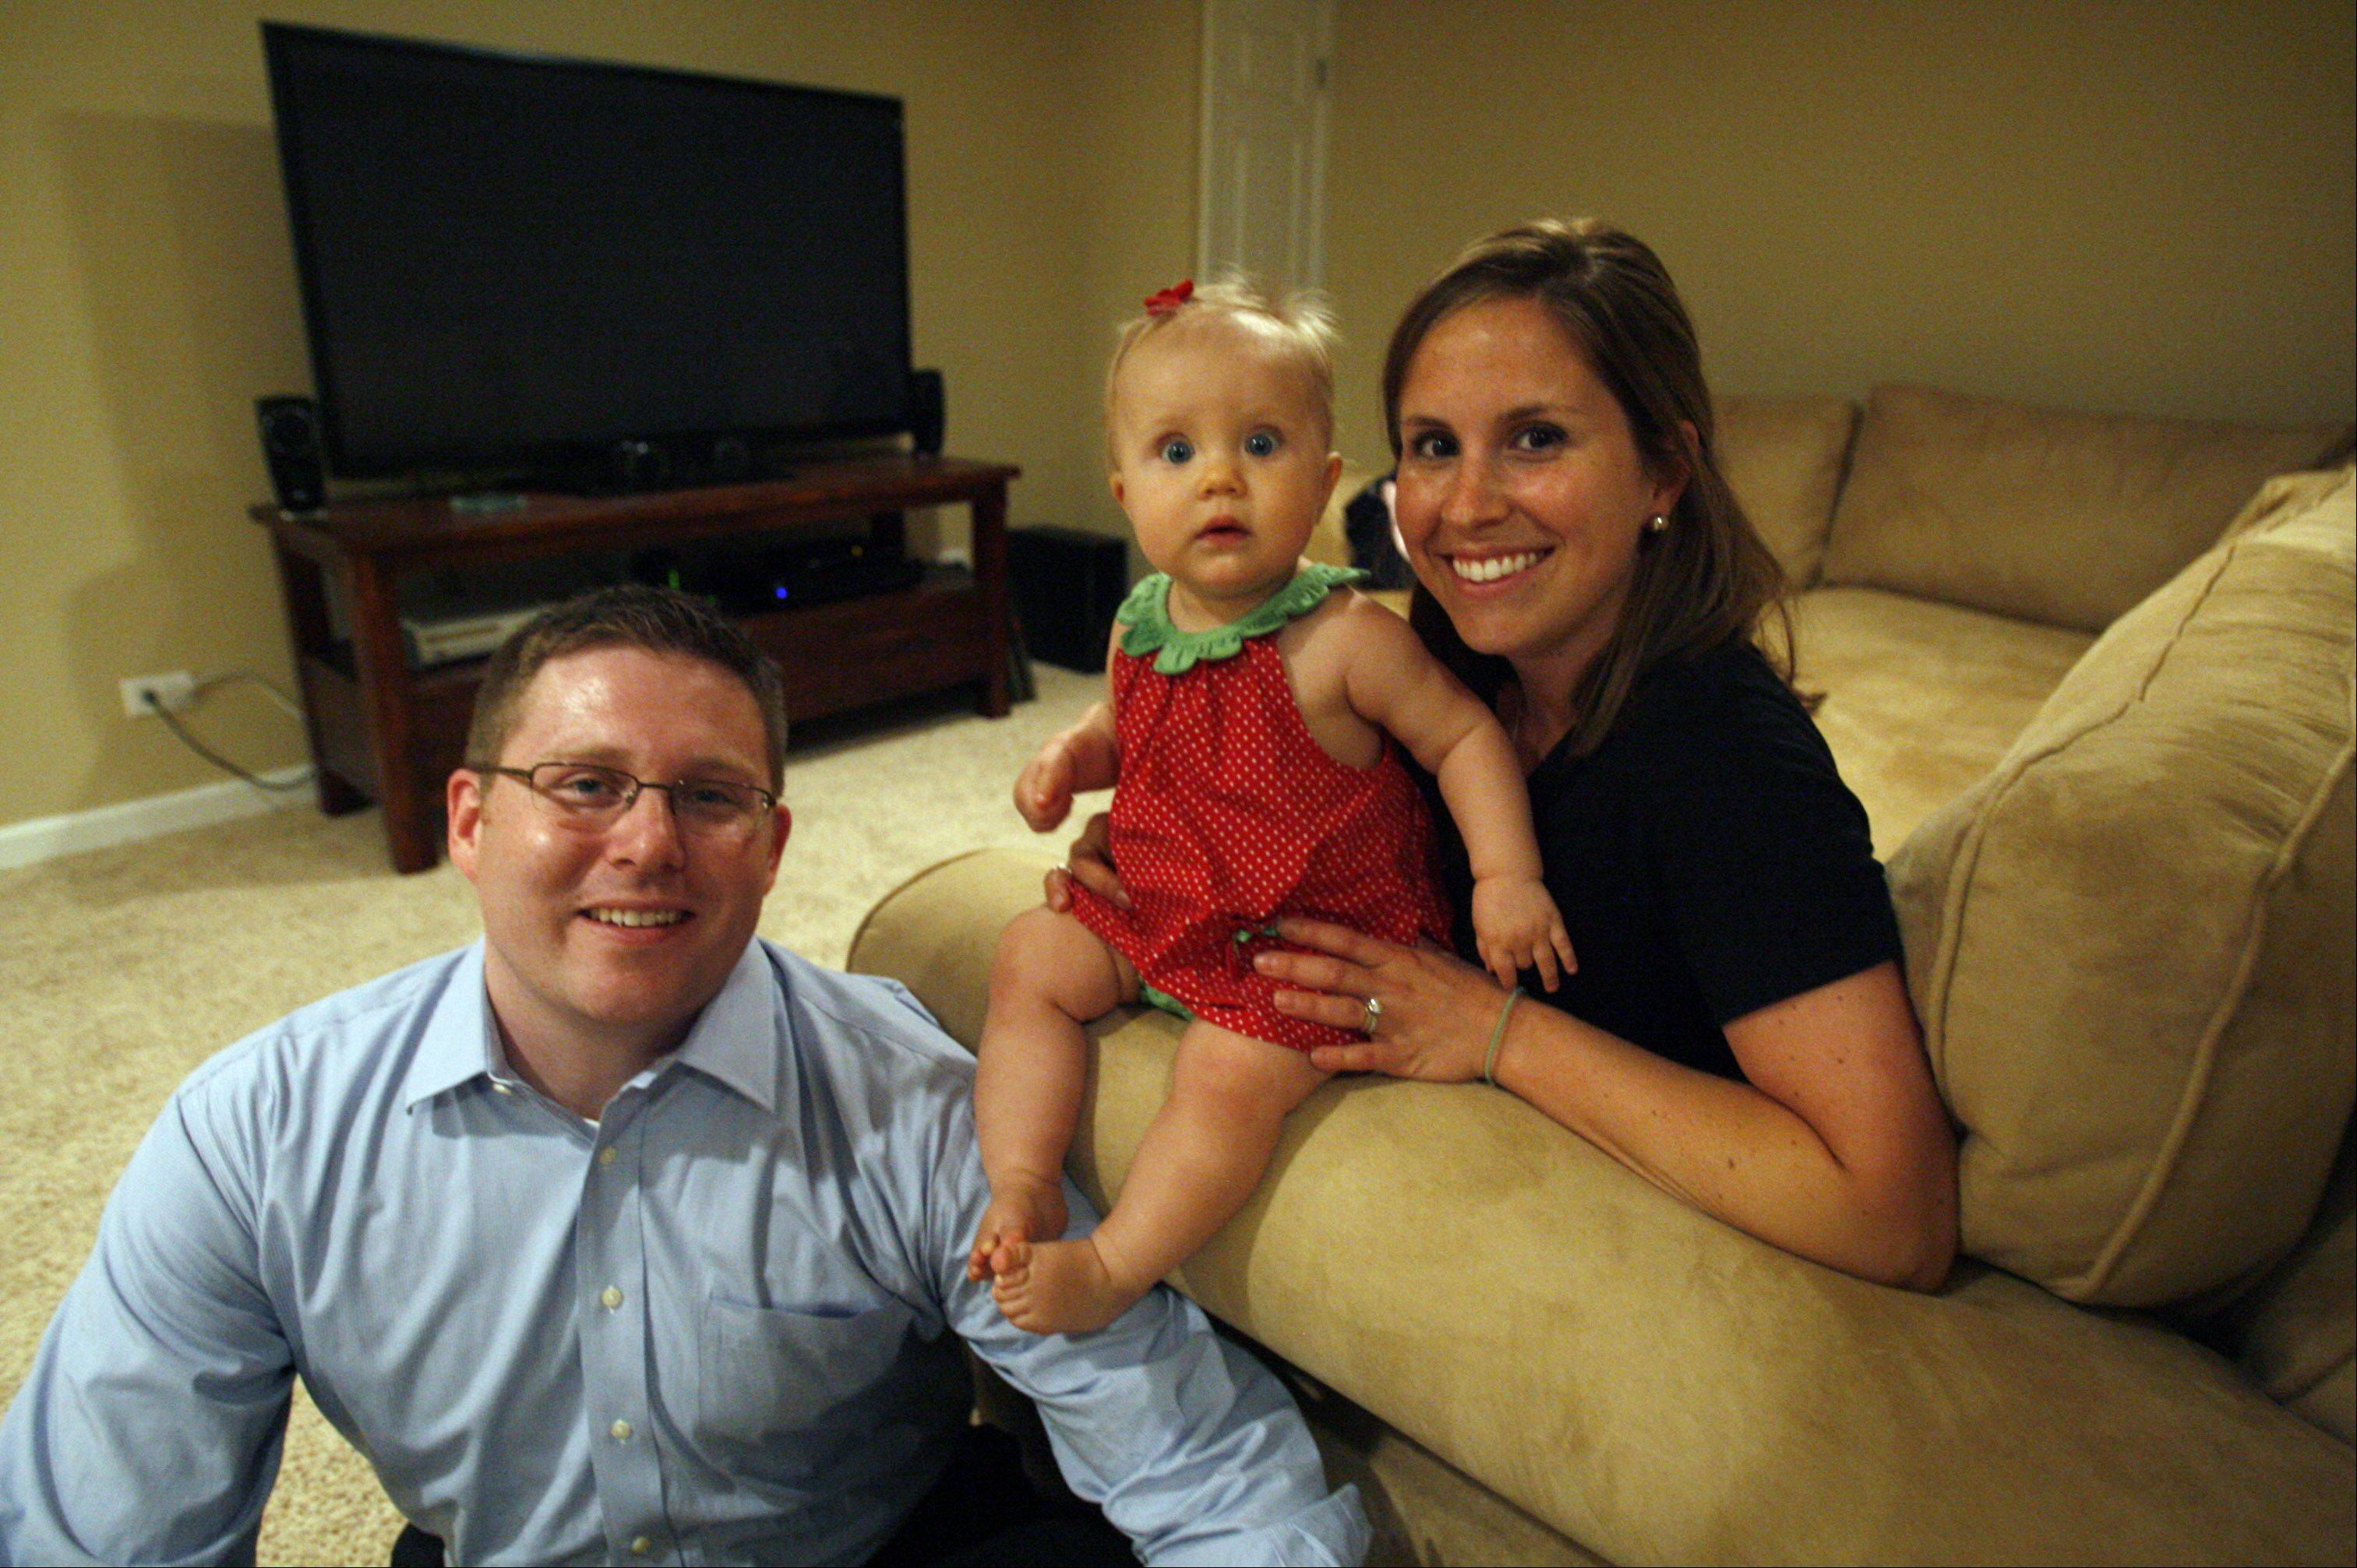 Ugliest Basement contest winners Matt and Anne Edwards with 10-month-old daughter Katherine in their newly finished basement in Arlington Heights.